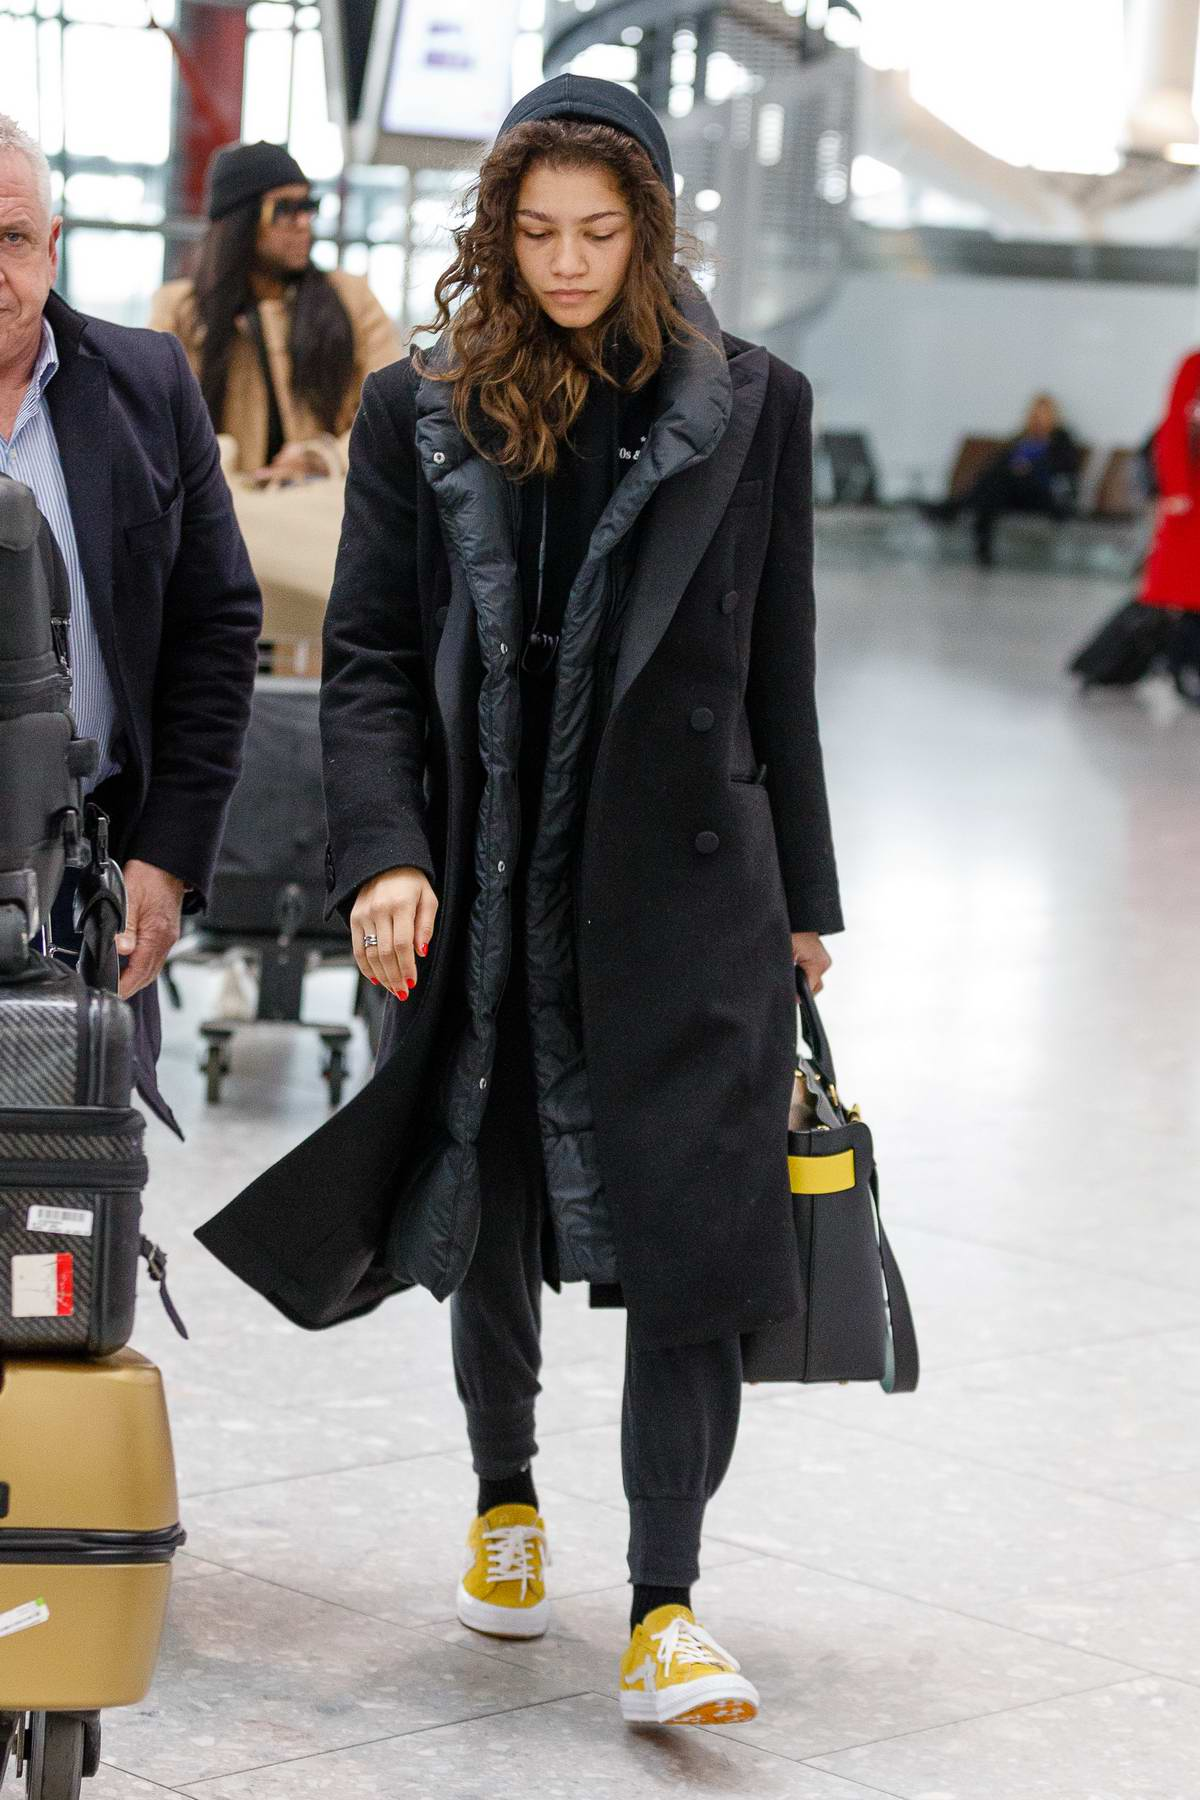 4a1d3472e2e3 zendaya coleman looks tired as she arrives at heathrow airport to fly out  of london-190218_1